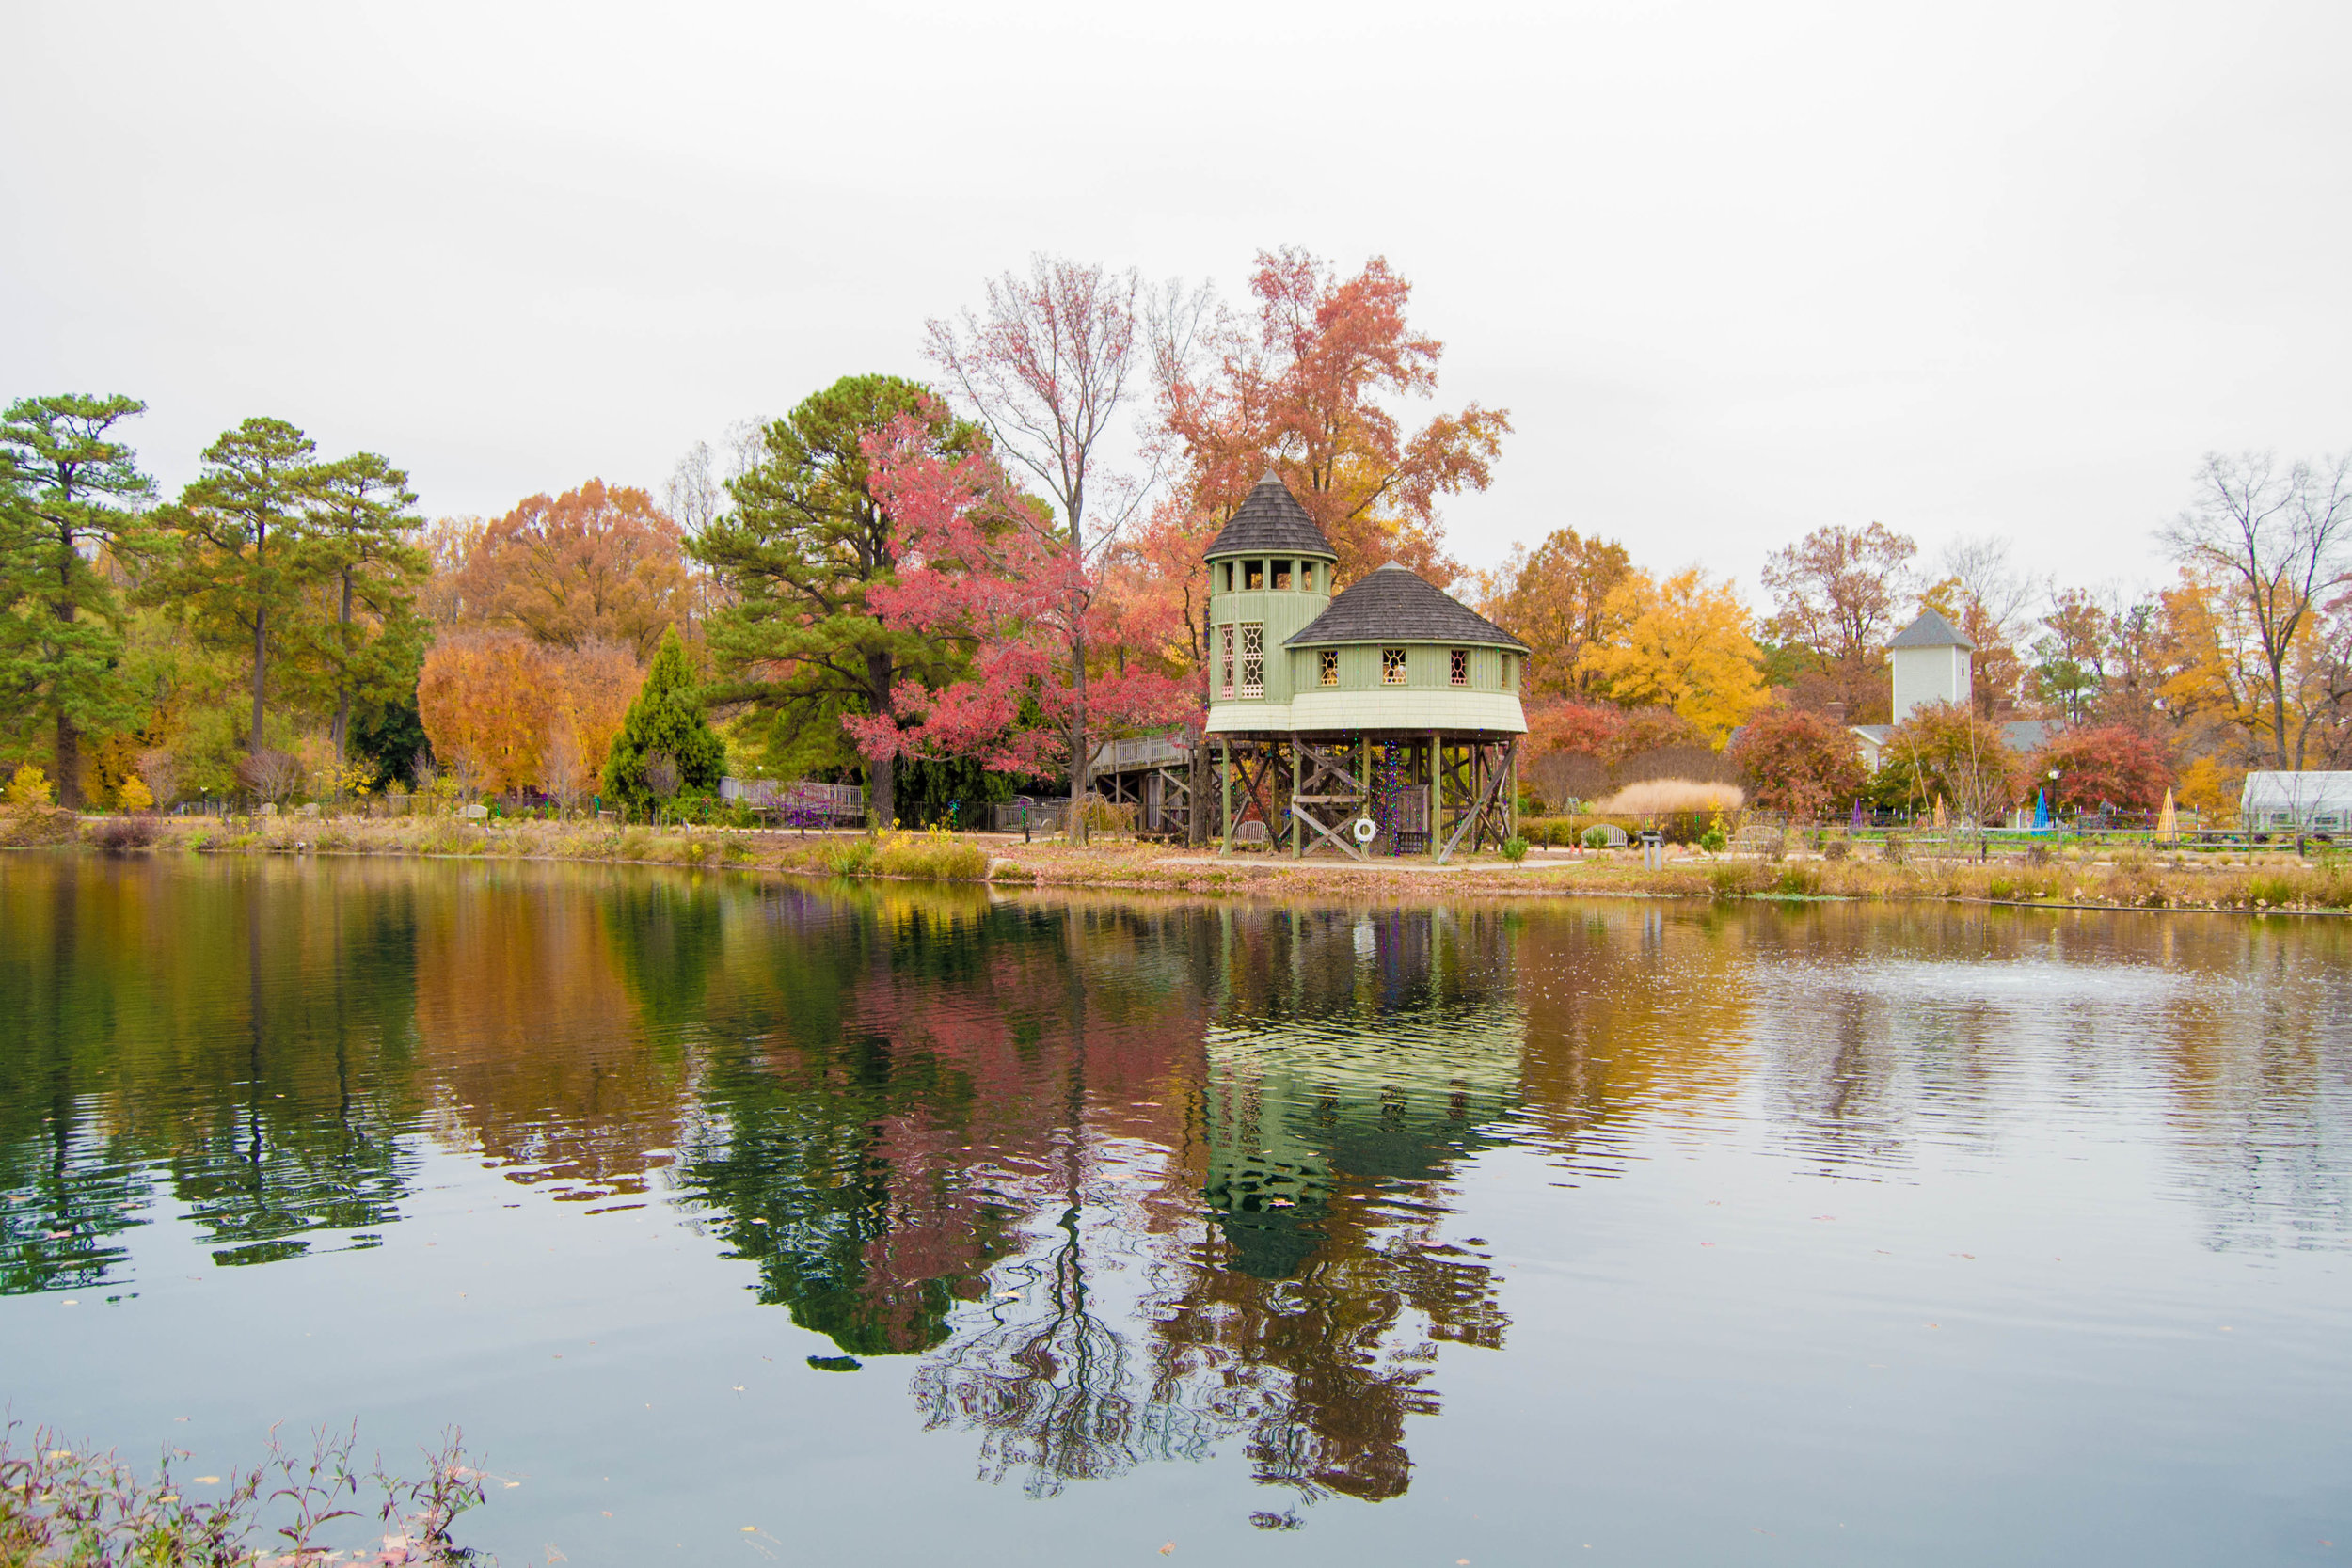 Our Enchanting Visit to the Lewis Ginter Botanical Garden - Our ...